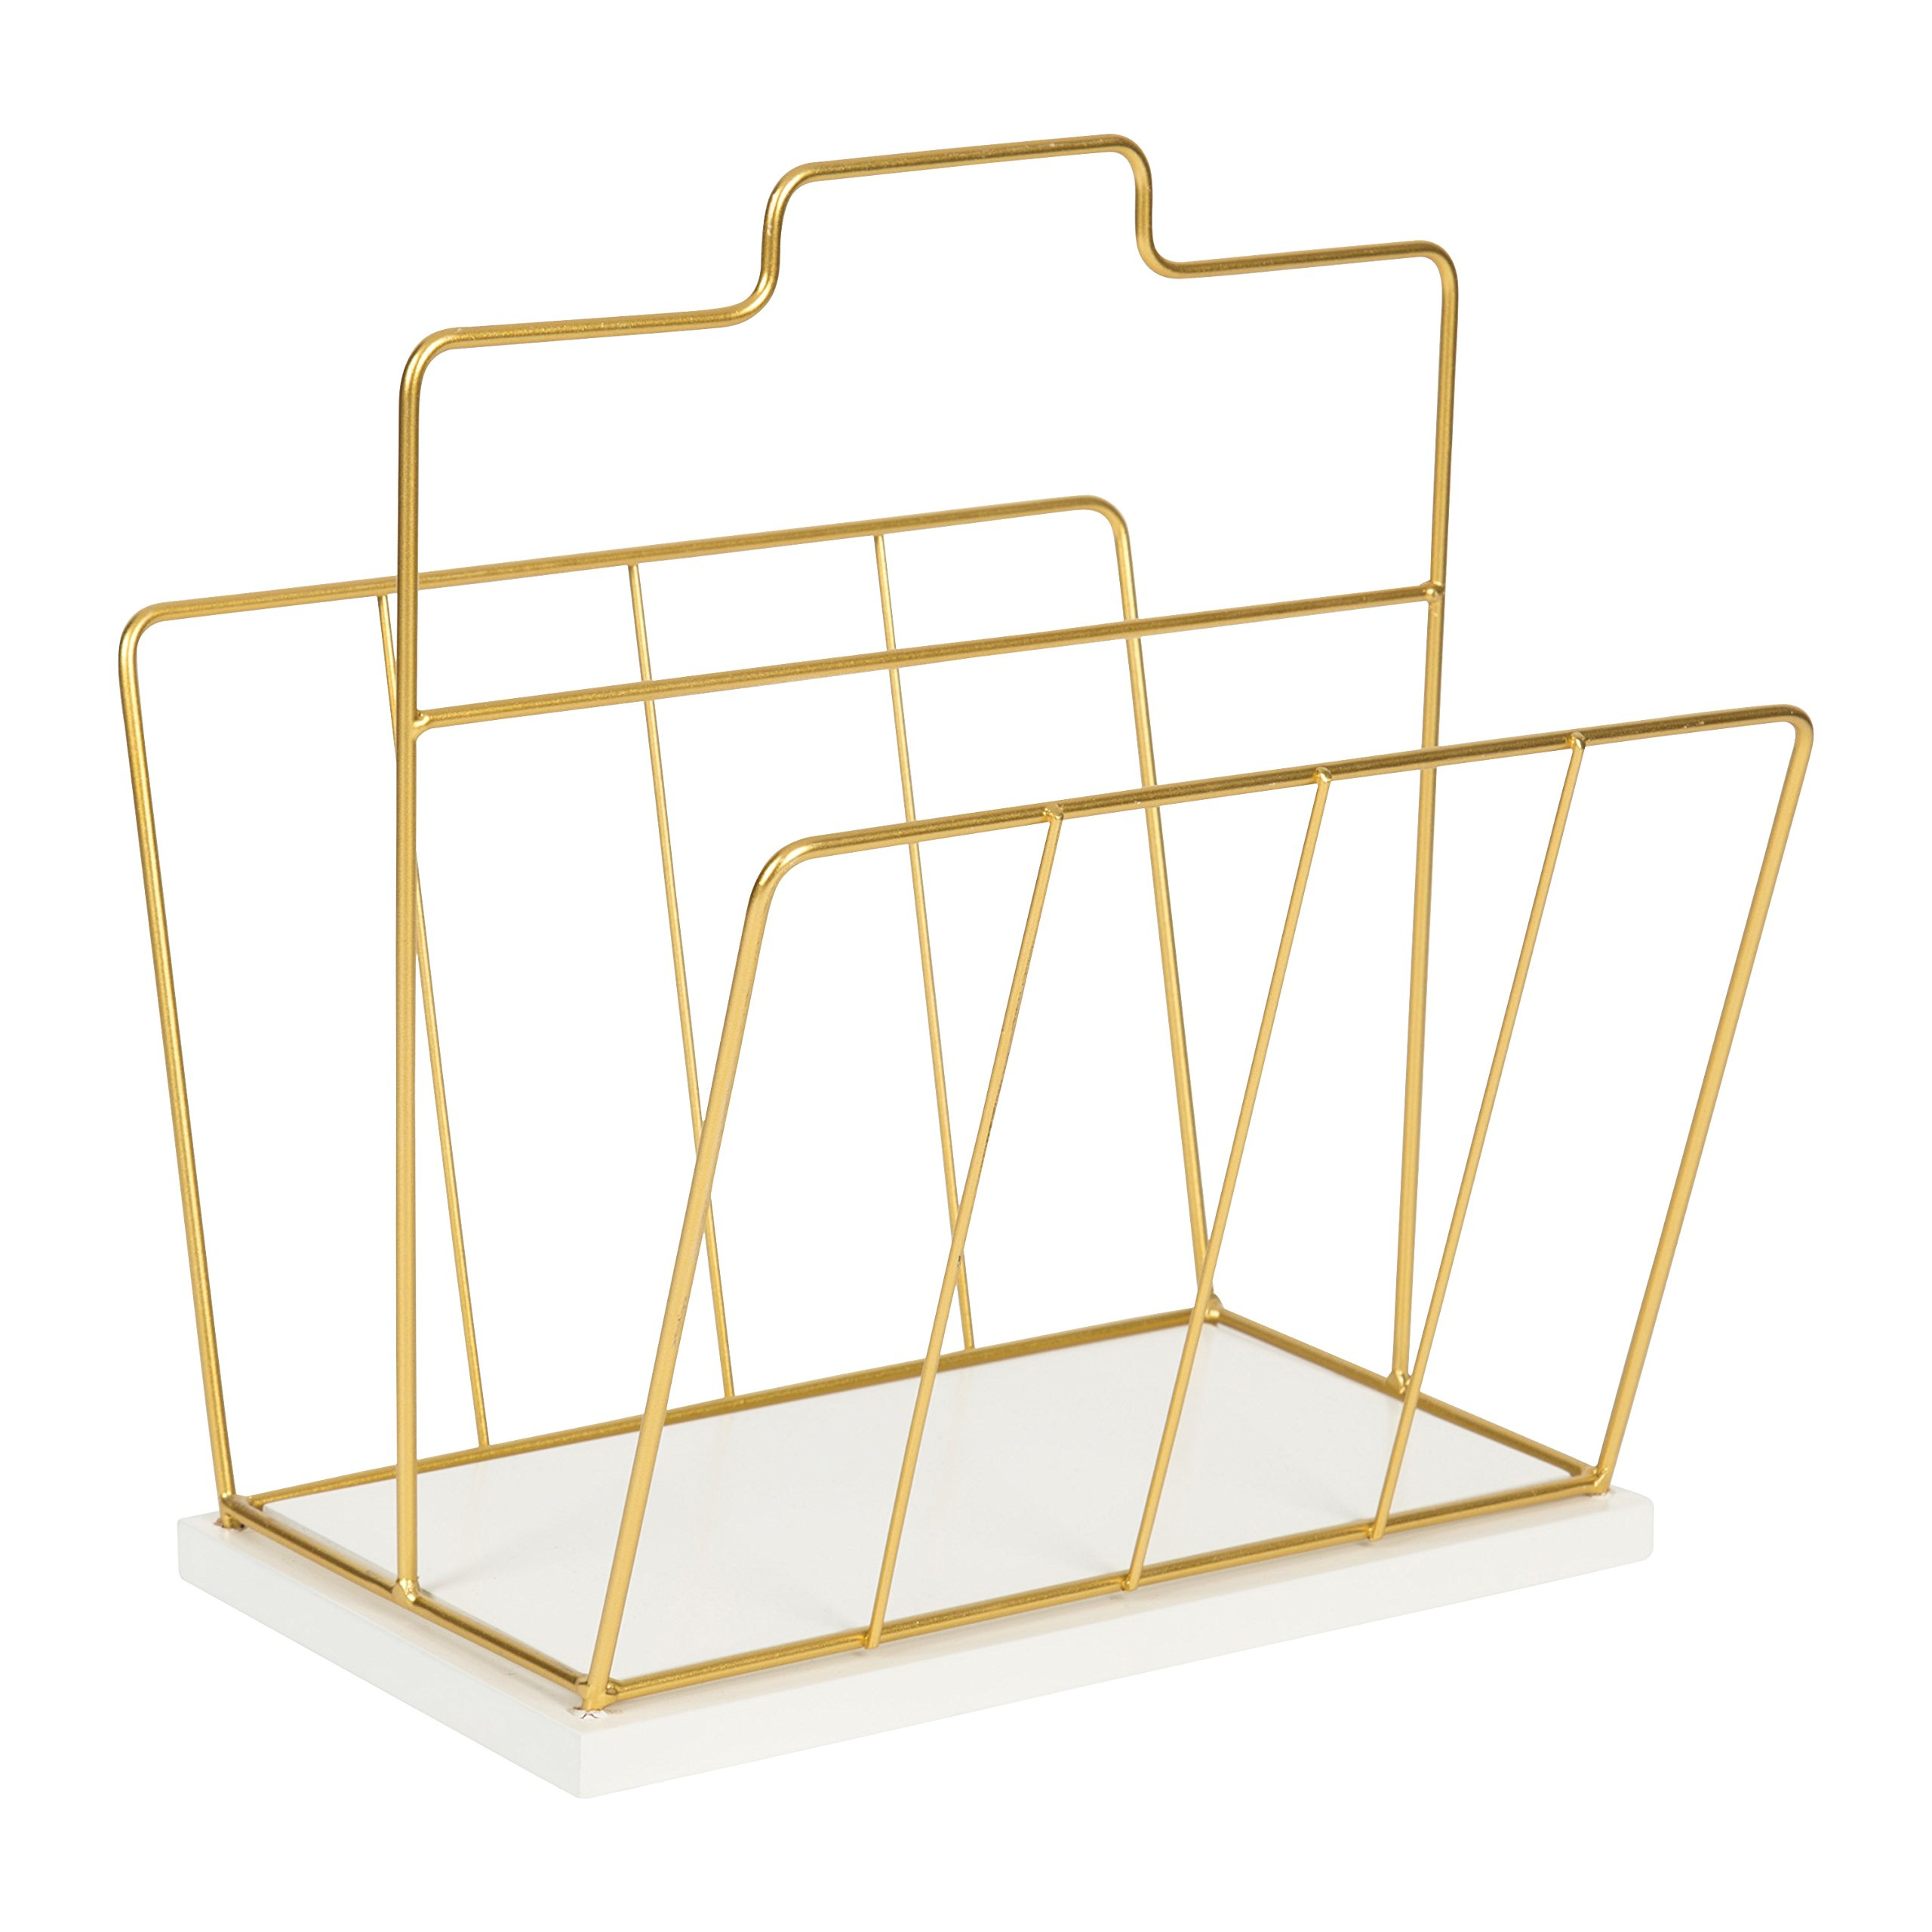 Kate and Laurel Benbrook Metal and Wood Magazine File Holder Desk Organizer, White and Gold